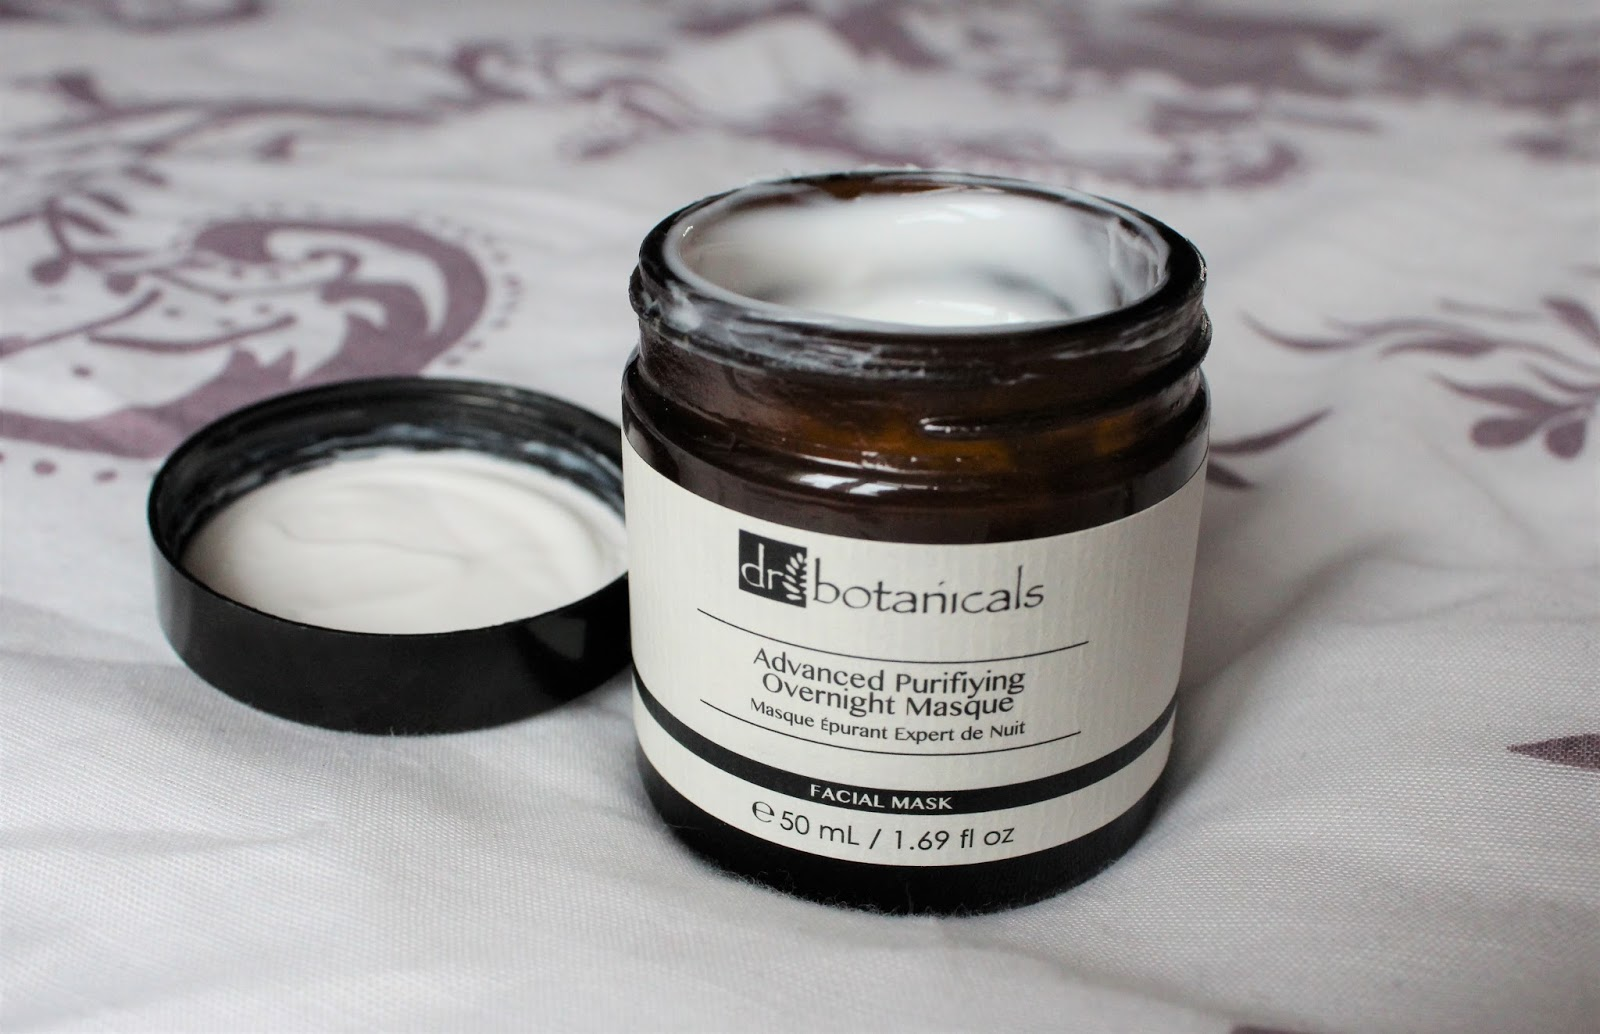 night face mask dr botanicals